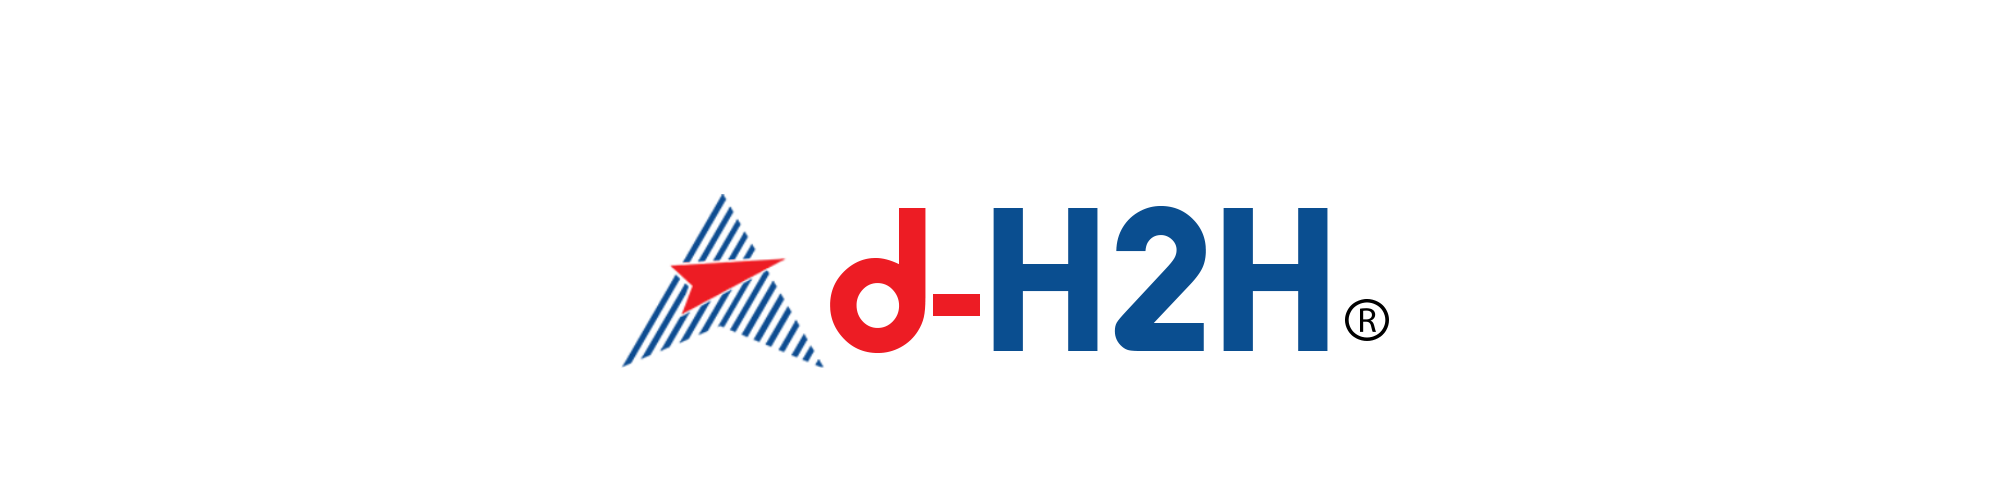 Ad-H2H (Host to Host)